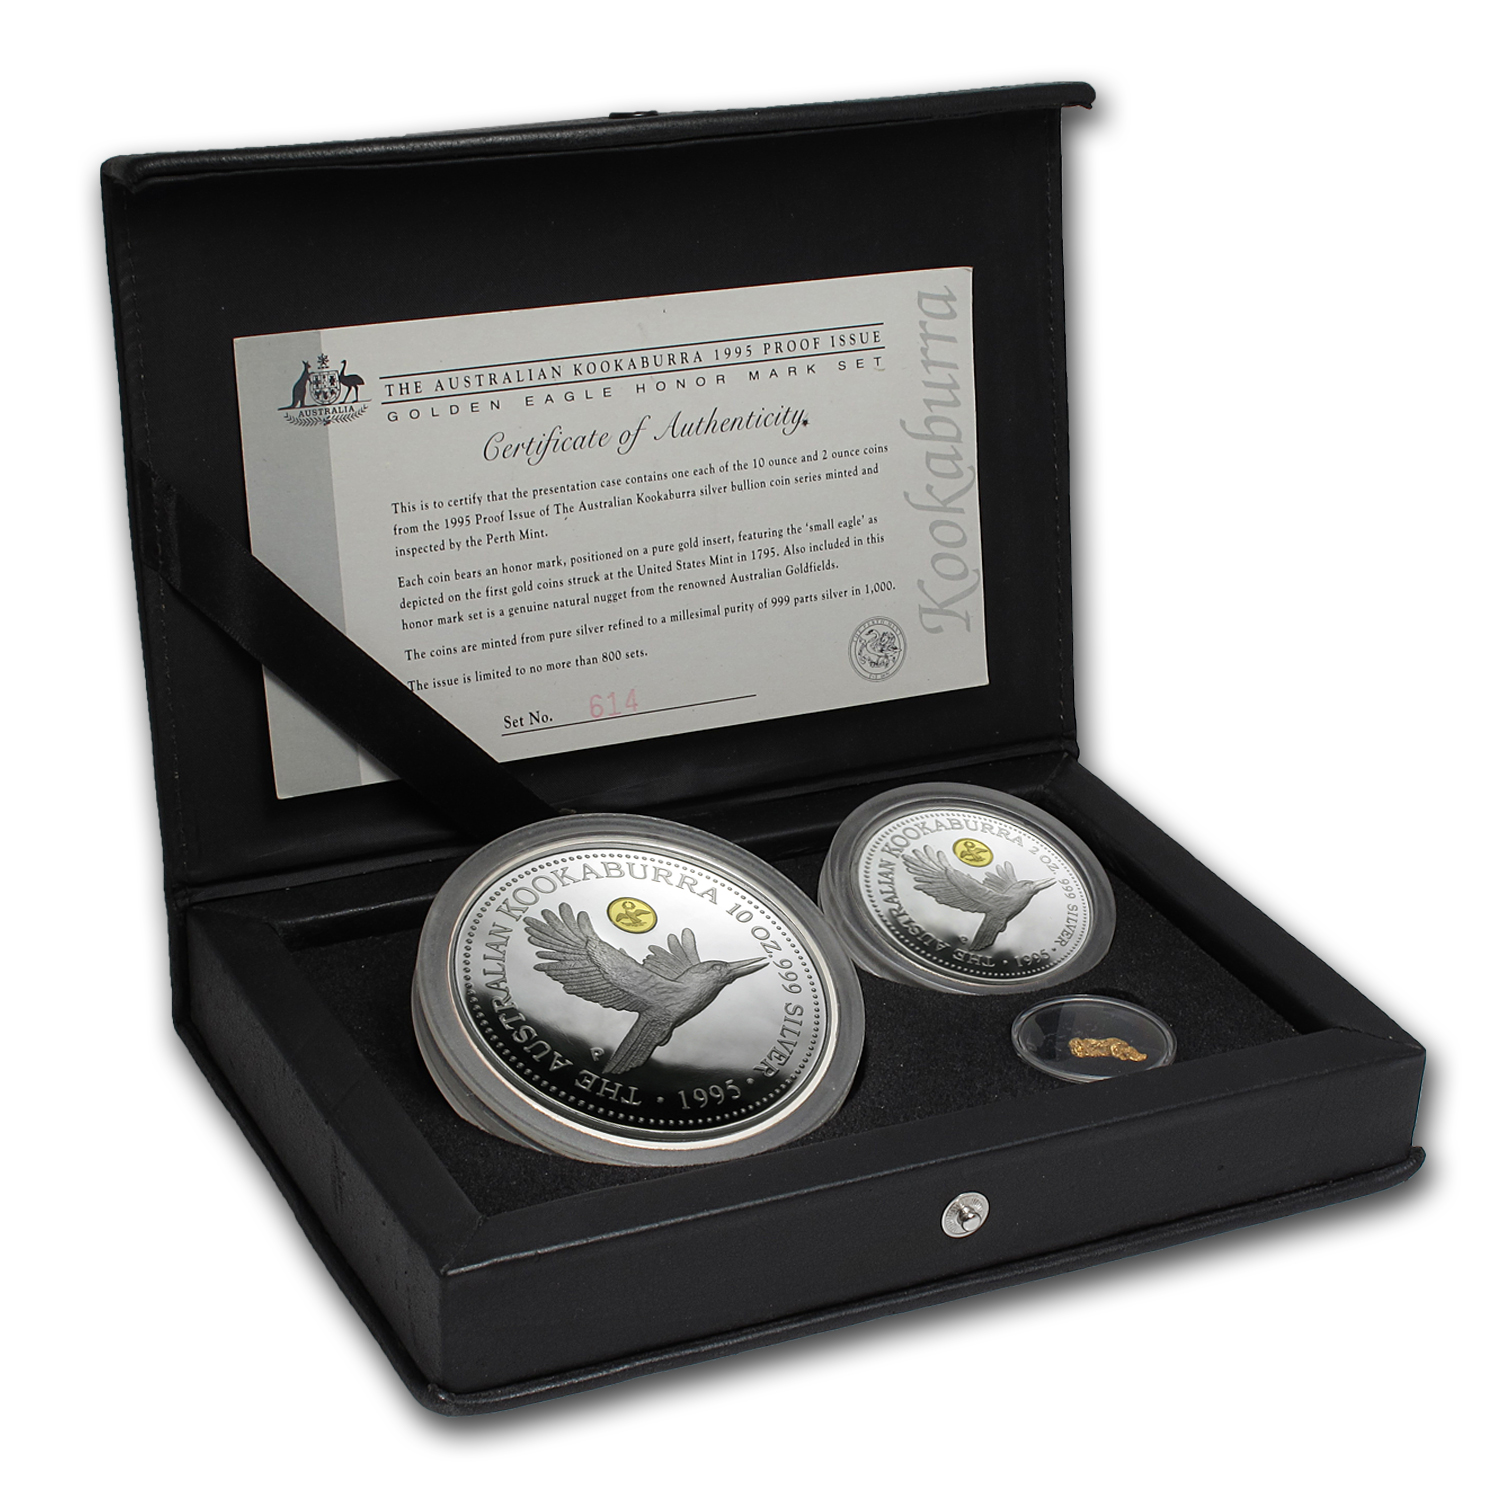 1995 2-Coin Silver Kookaburra Proof Set (Golden Eagle Honor)